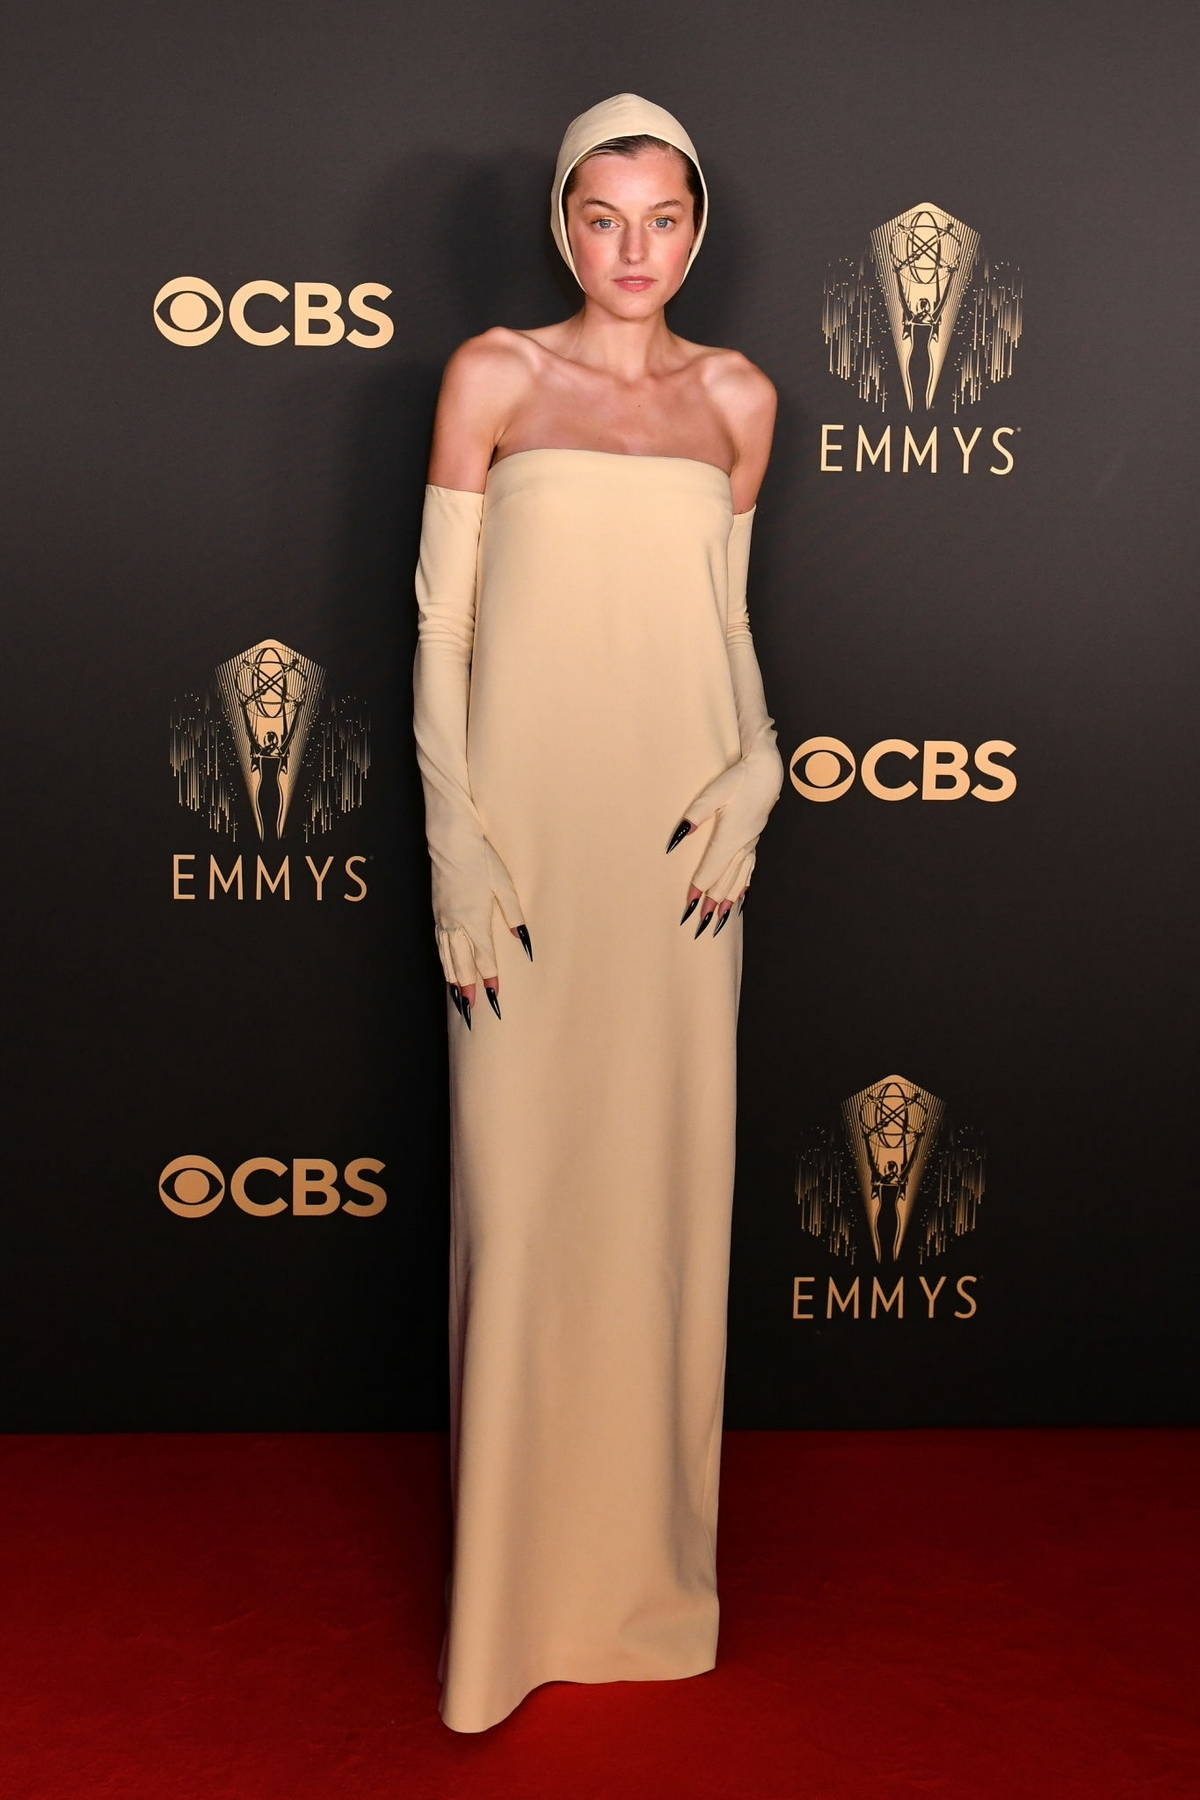 Emma Corrin attends 'The Crown' 73rd Primetime Emmys Celebration at Soho House in London, UK